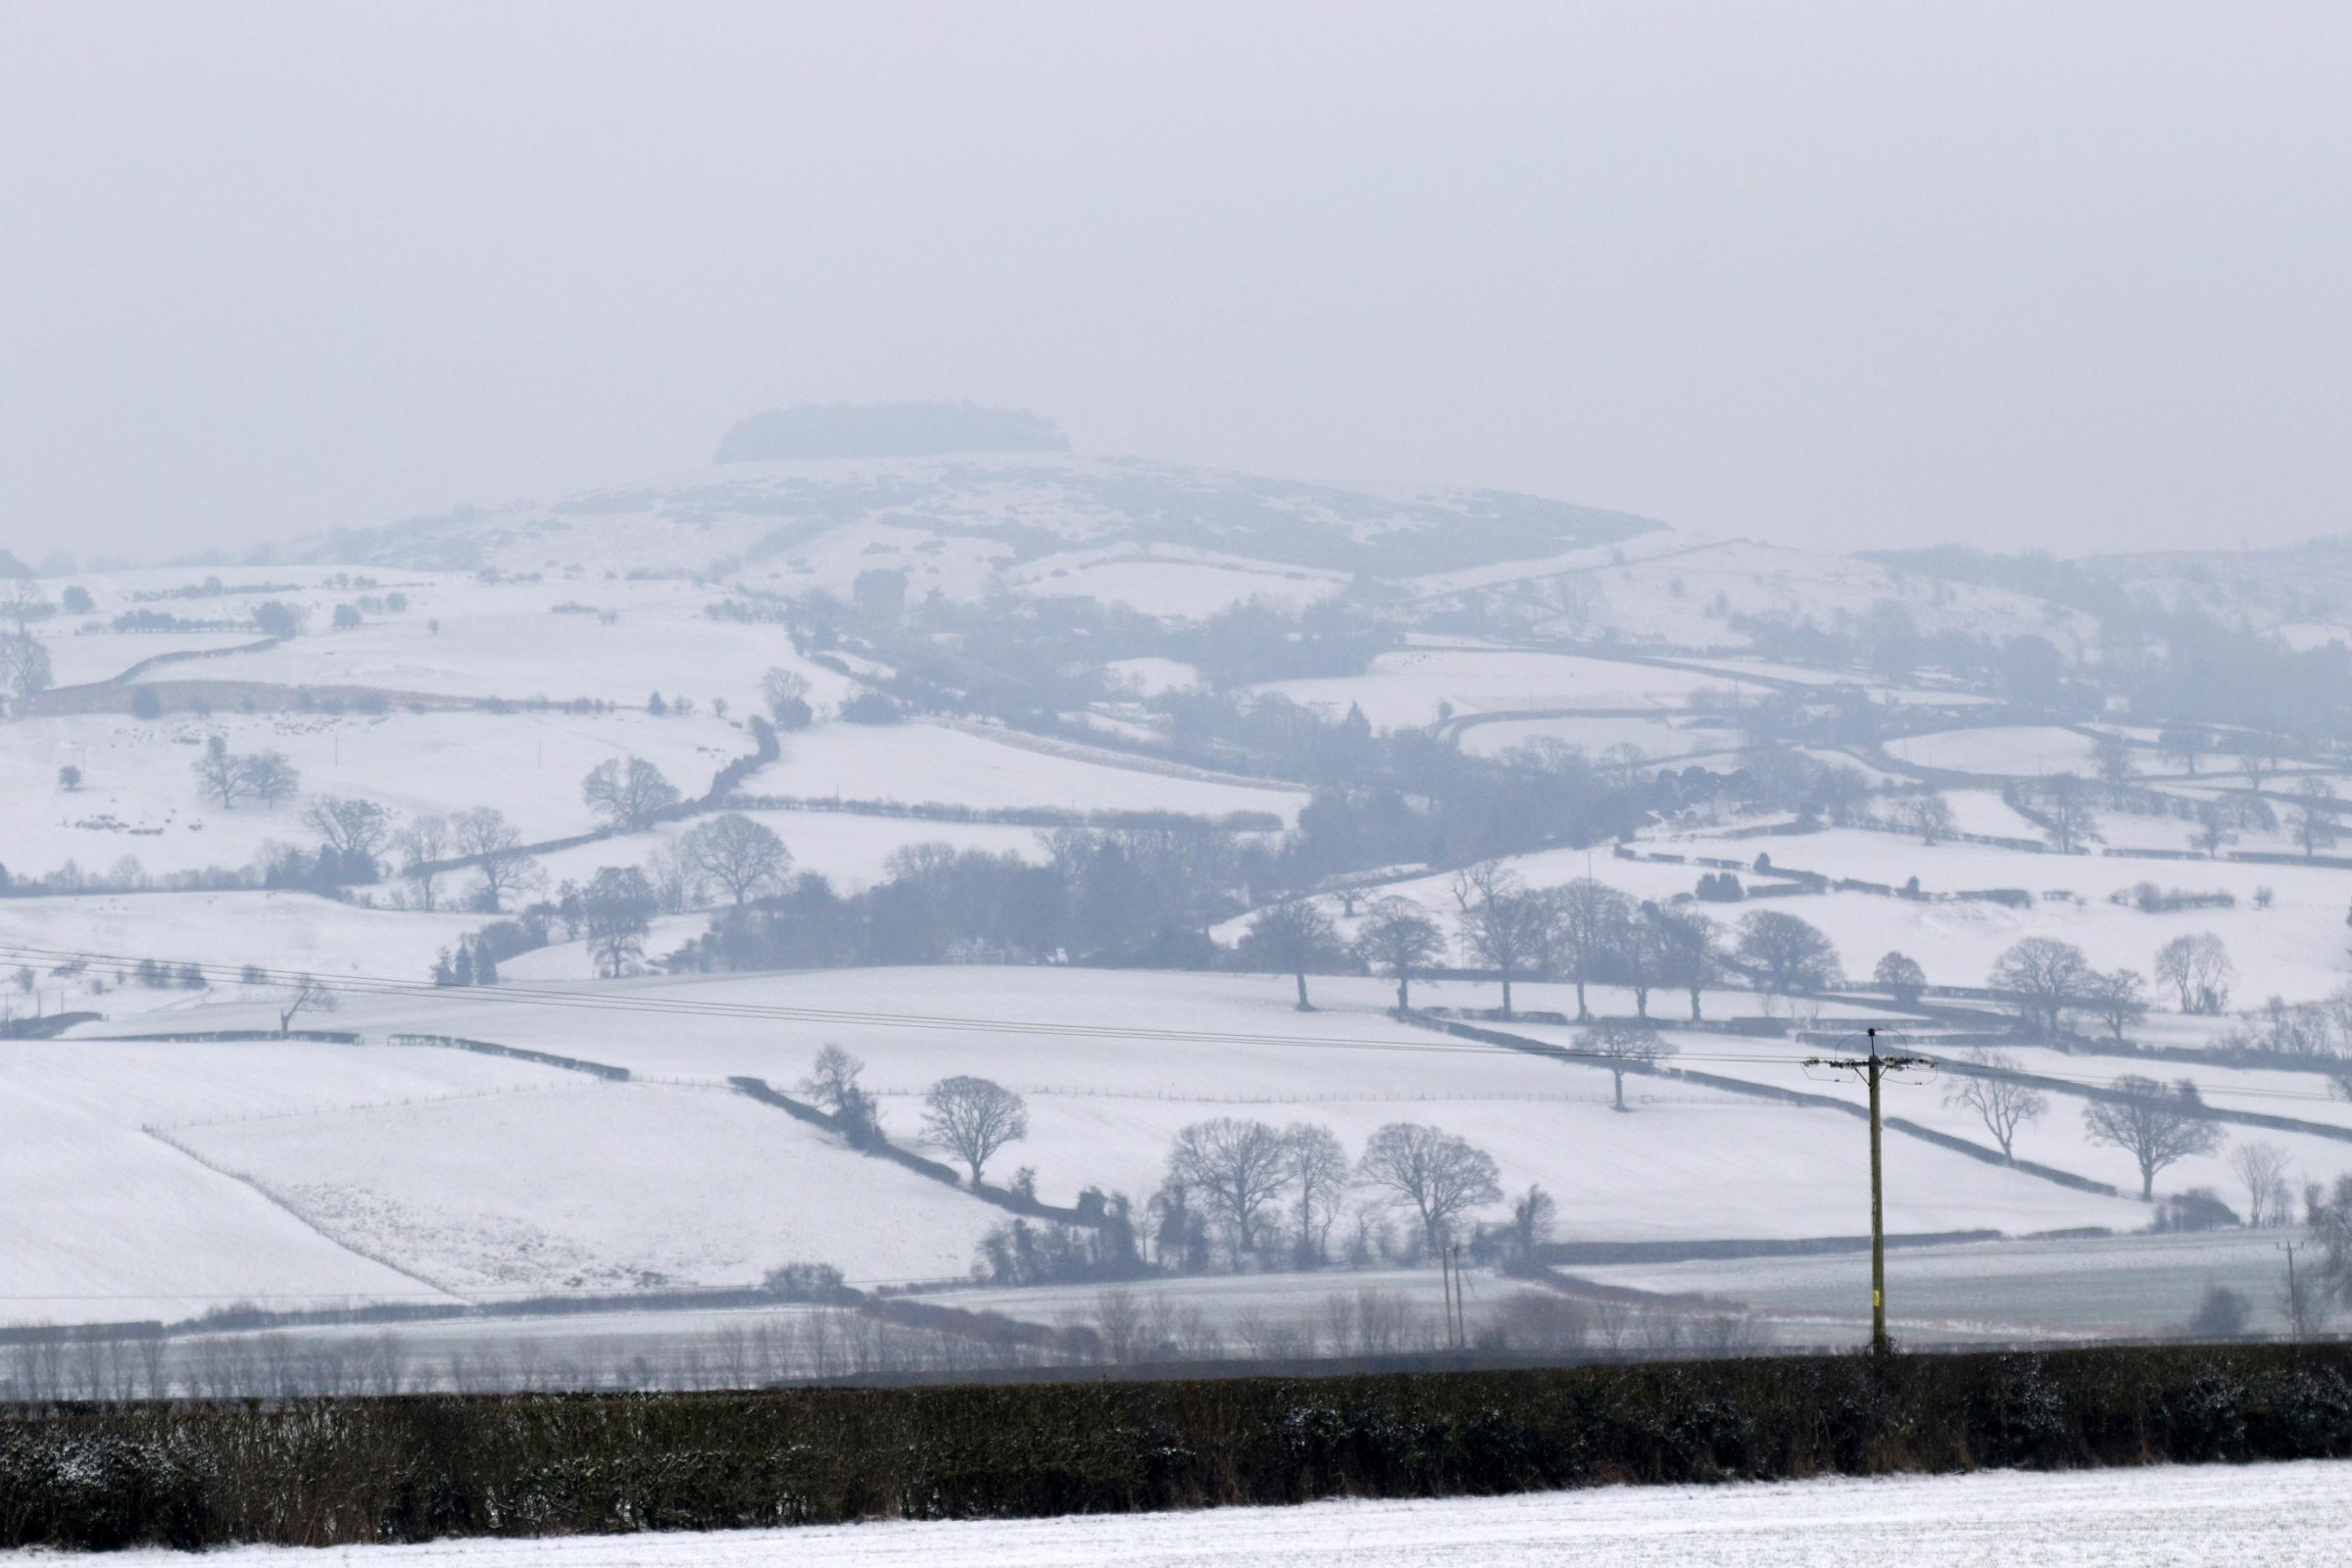 Snow has been thick in Powys